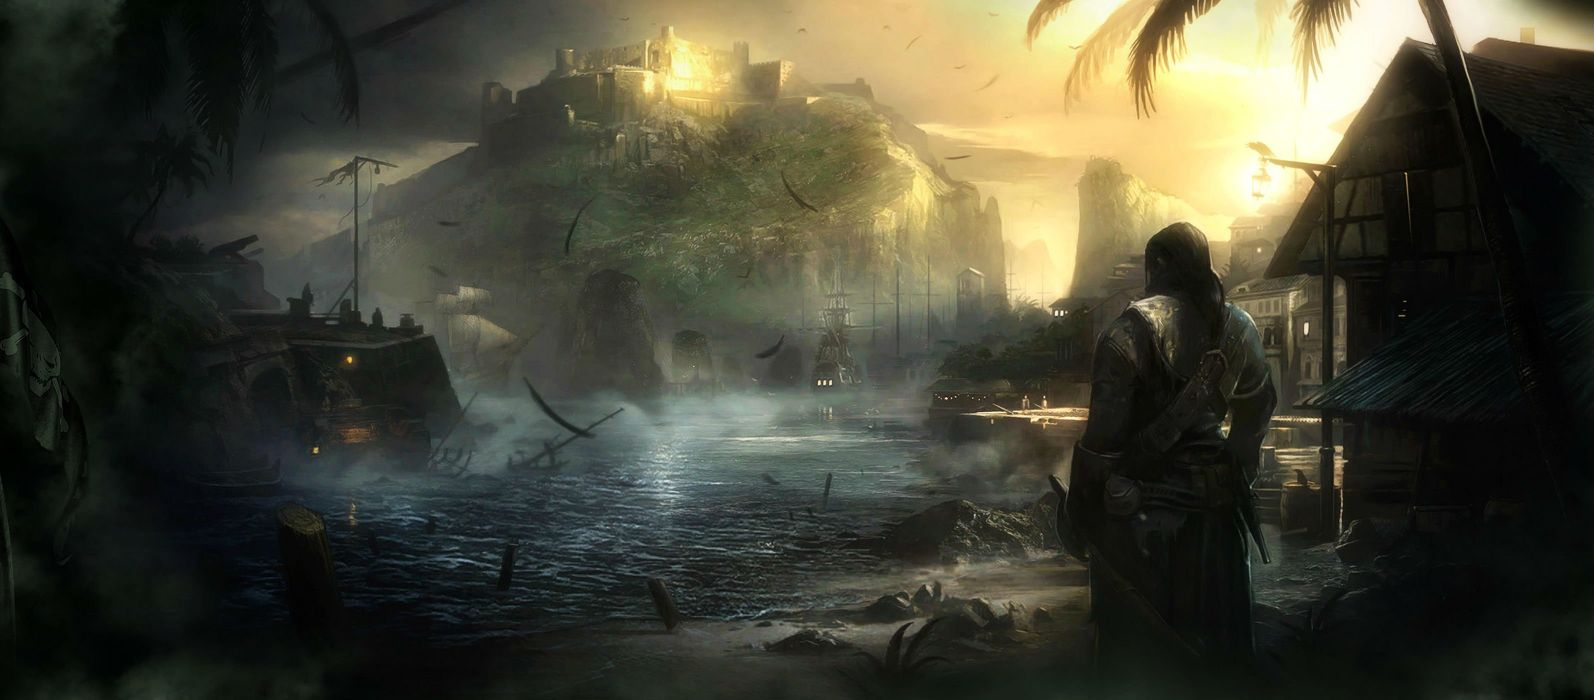 RAVENS CRY fantasy action adventure rpg pirate pirates wallpaper